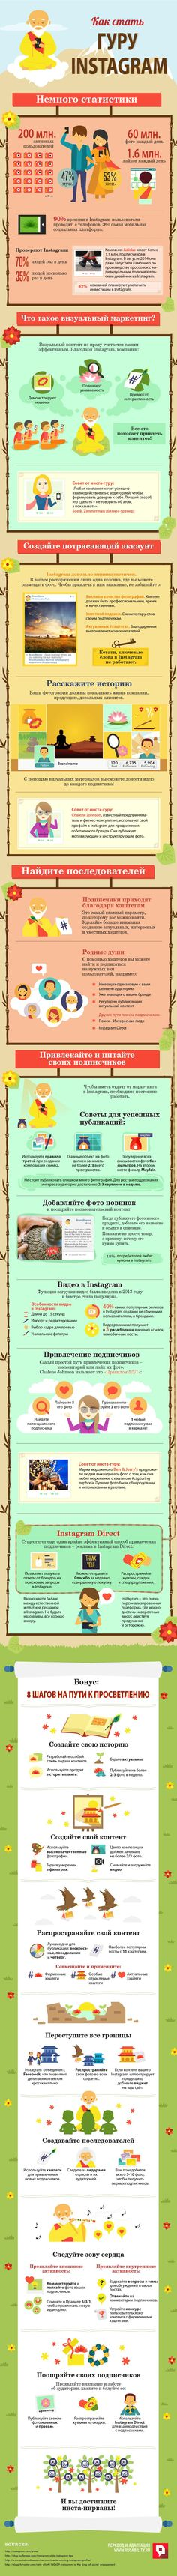 smm, instagram, соцсети, продвижение | Get professional SEO services at http://www.techhelp.ca